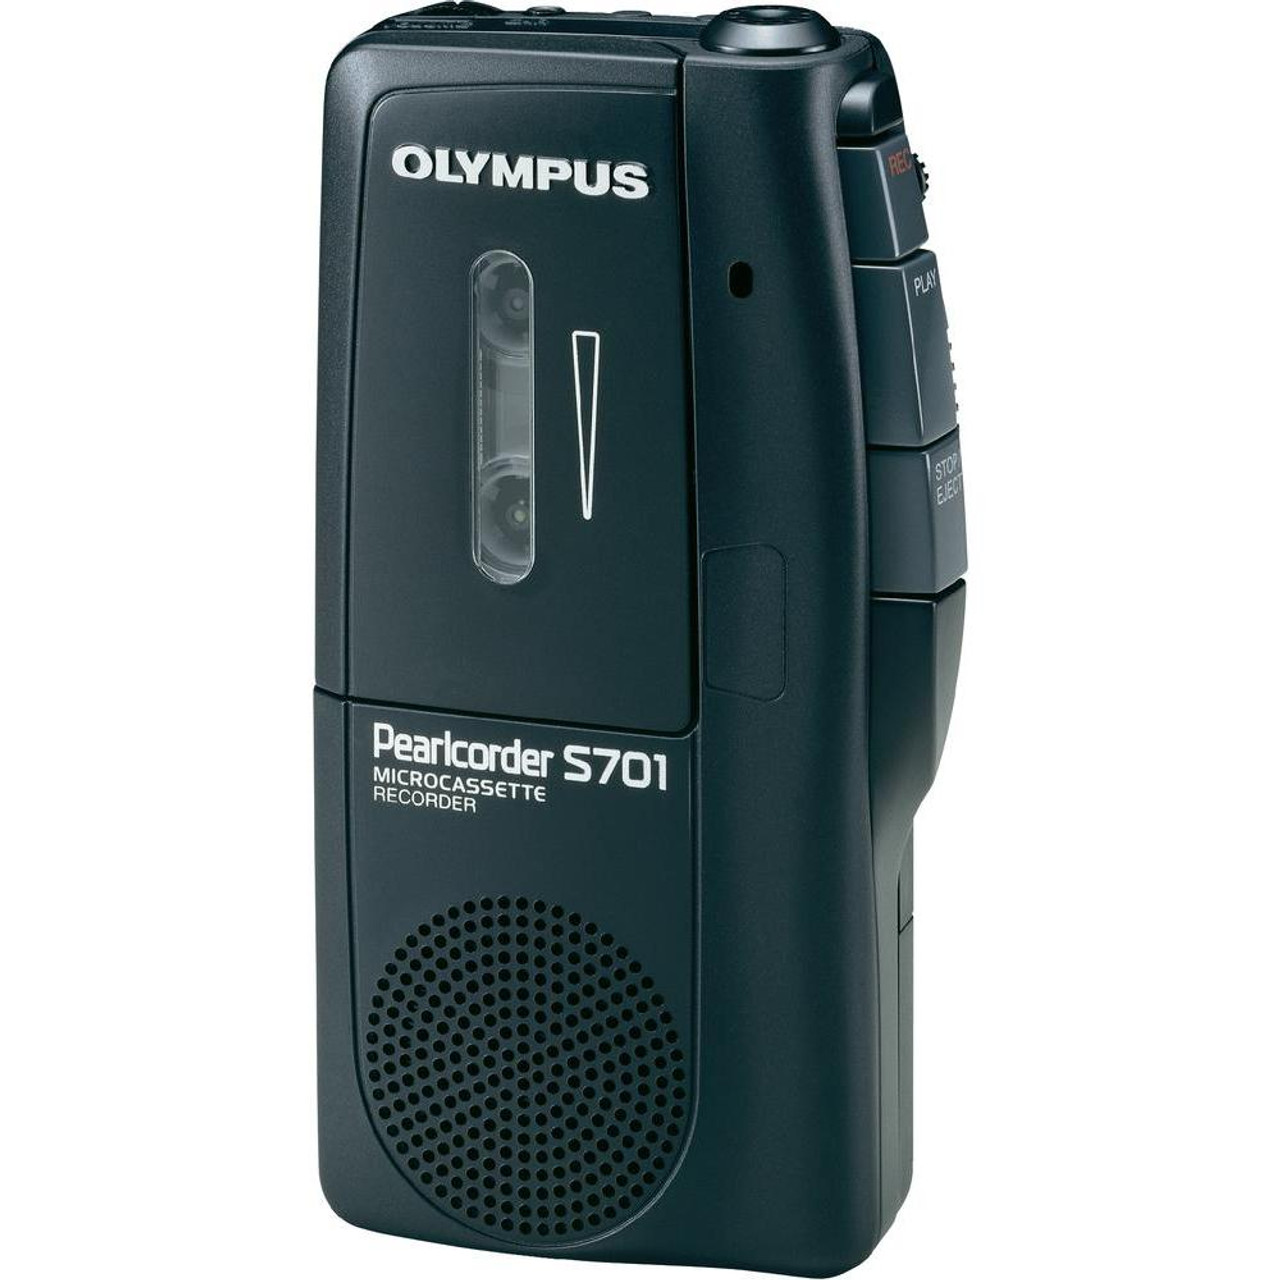 Olympus S701 Pearlcorder Microcassette Recorder Portable Audio ...